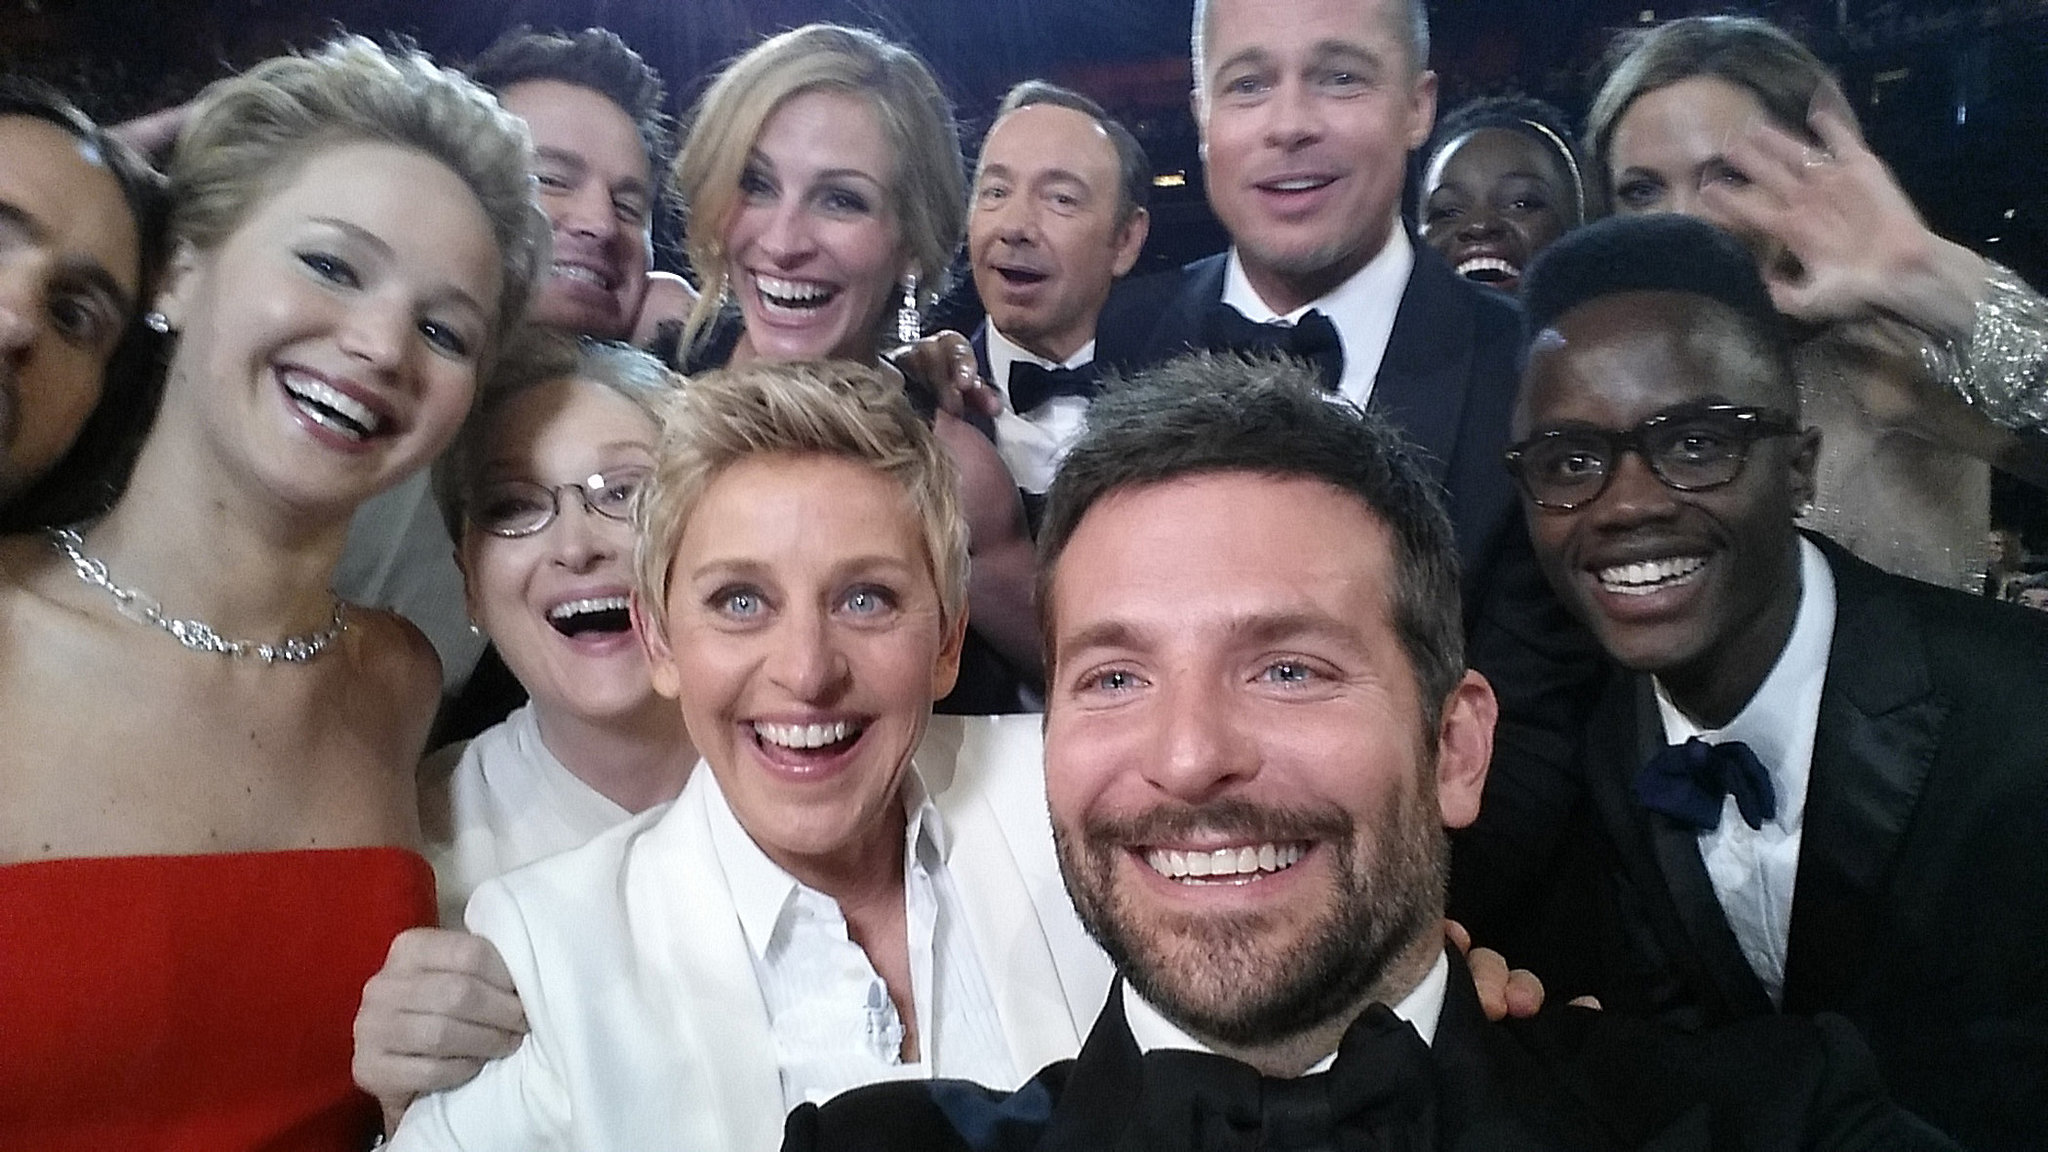 Here's that famous Oscars selfie that Ellen DeGeneres took in March 2014 with Bradley Cooper, Jennifer Lawrenc